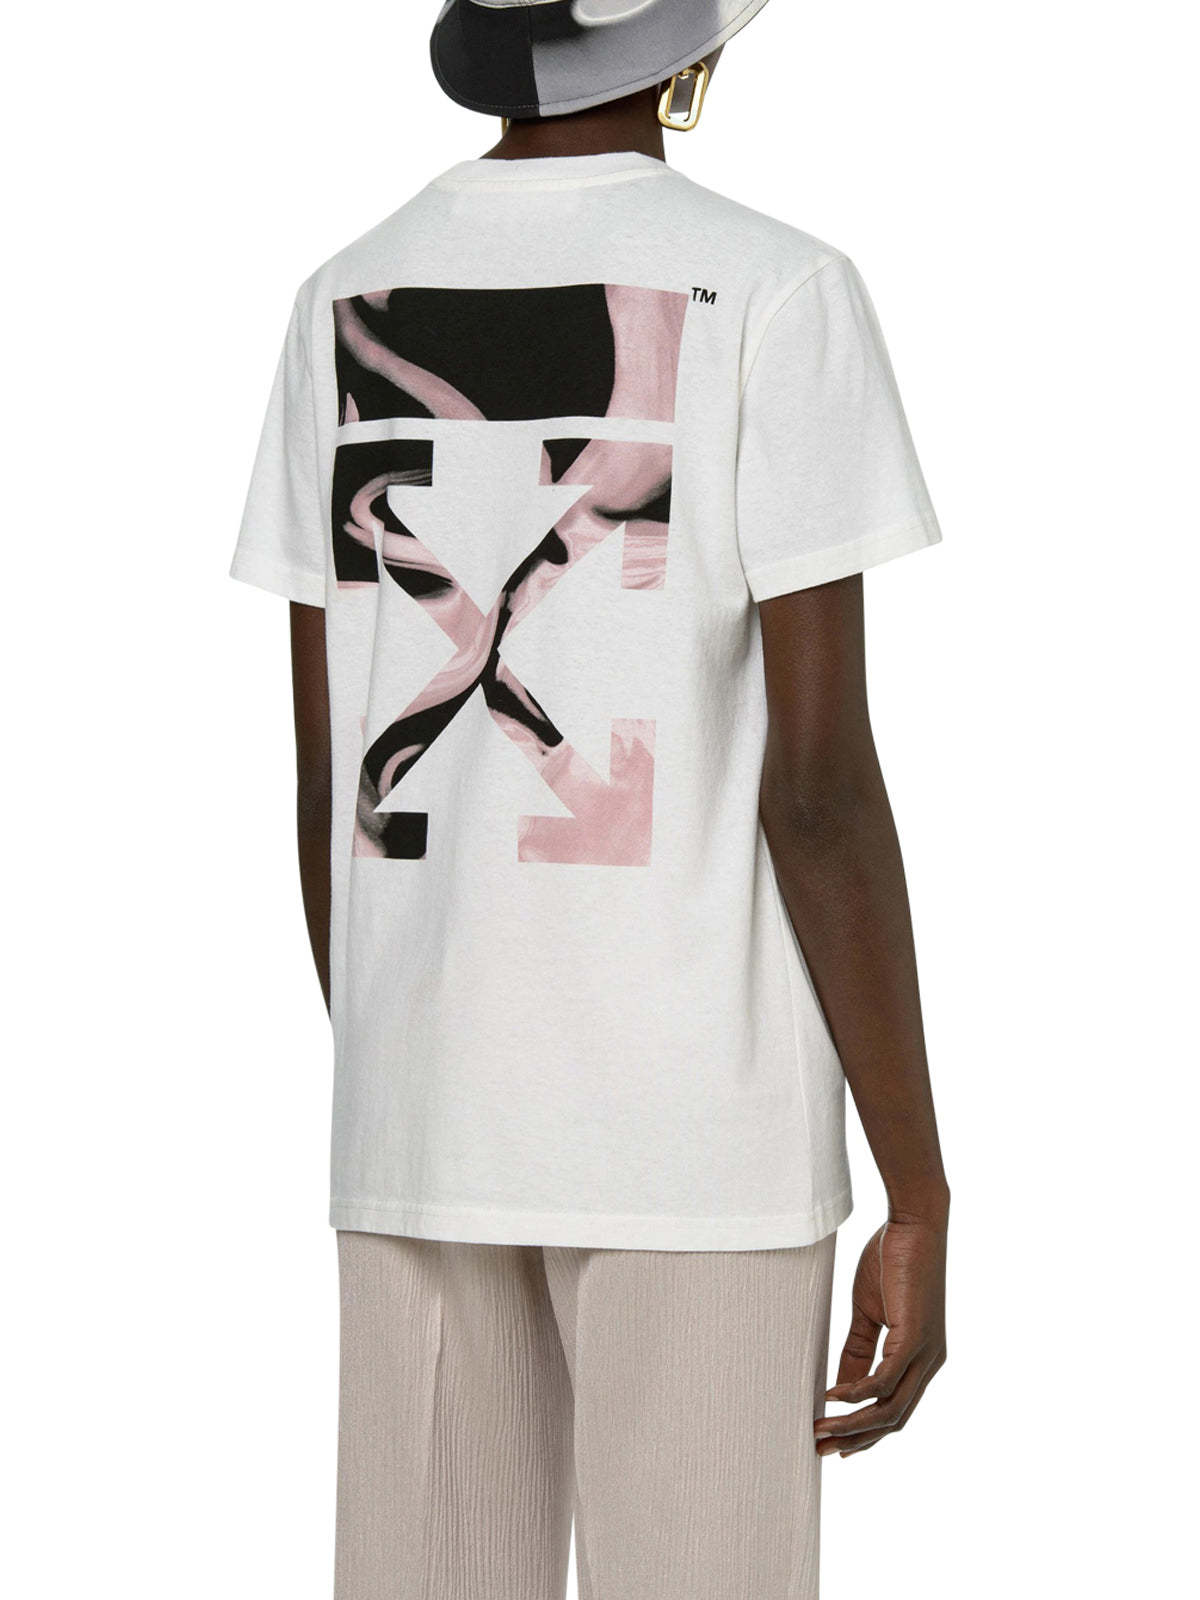 LIQUID ARROWS S/S T-SHIRT